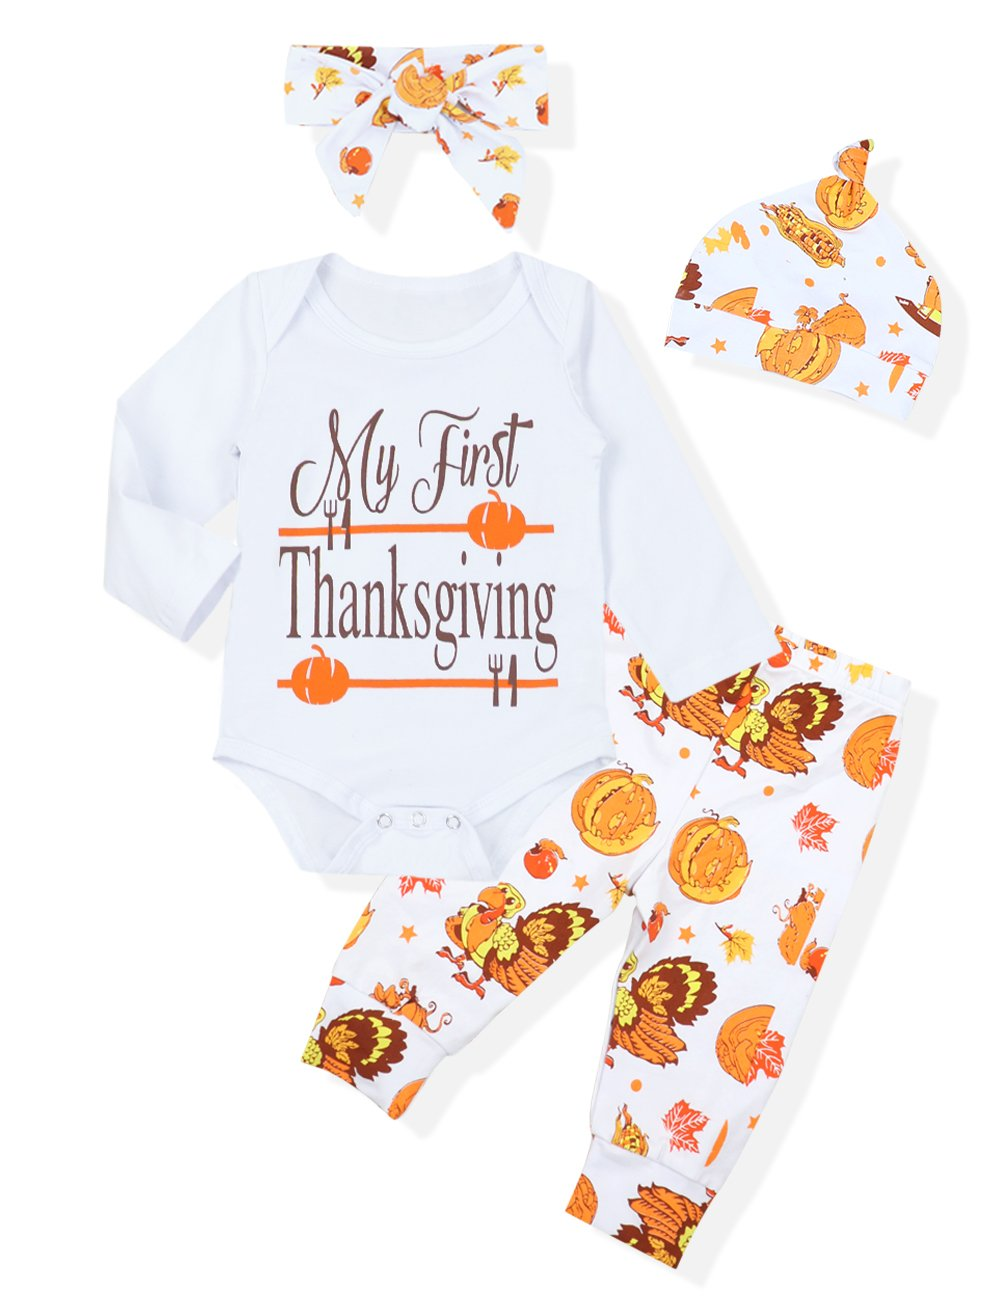 My First Thanksgiving Outfits Baby Boy Girl Clothes Letter Print Romper Top + Turkey Pant with Hat and Headband Costume(0-3 Months)